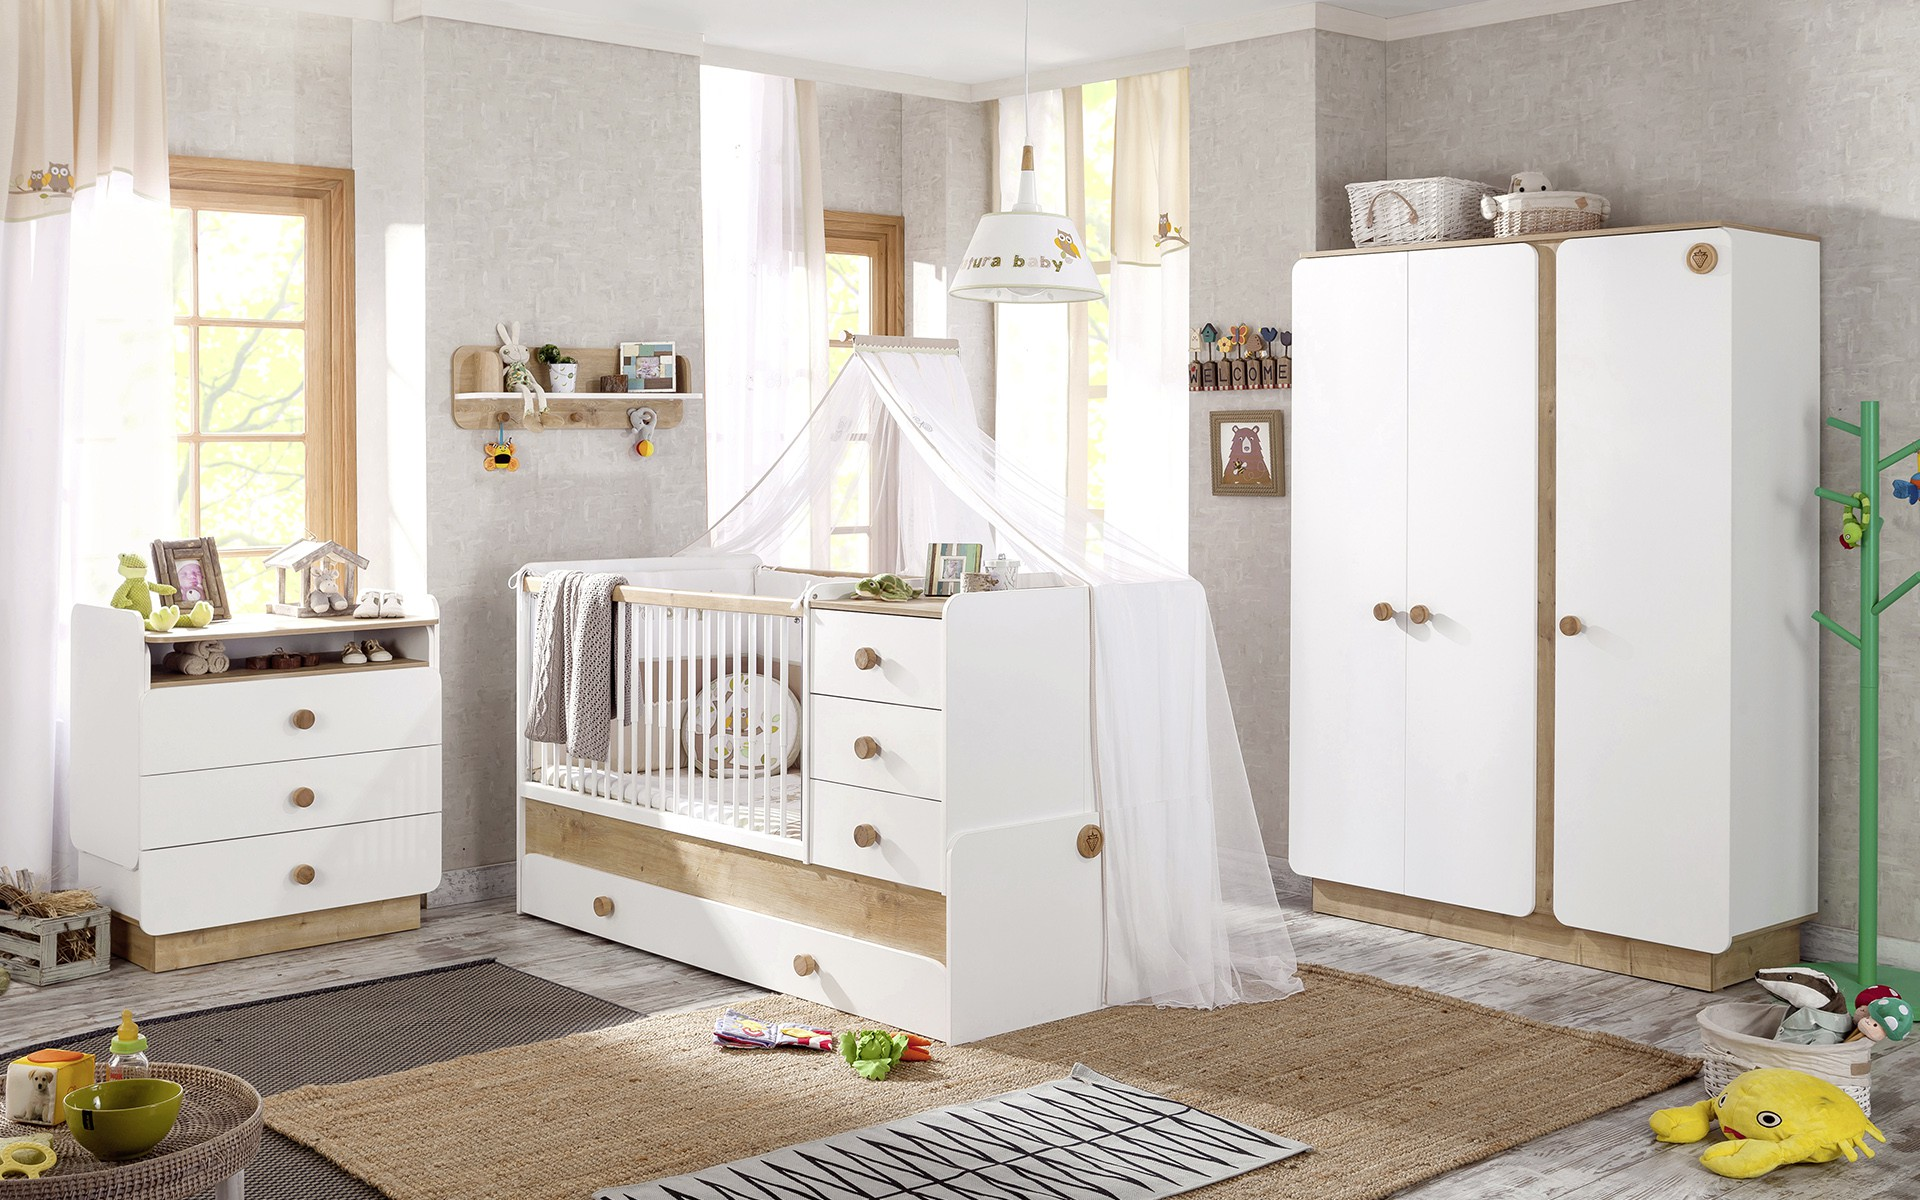 Baby slaapkamer: trendy babybox wit must haves hippe mama s.